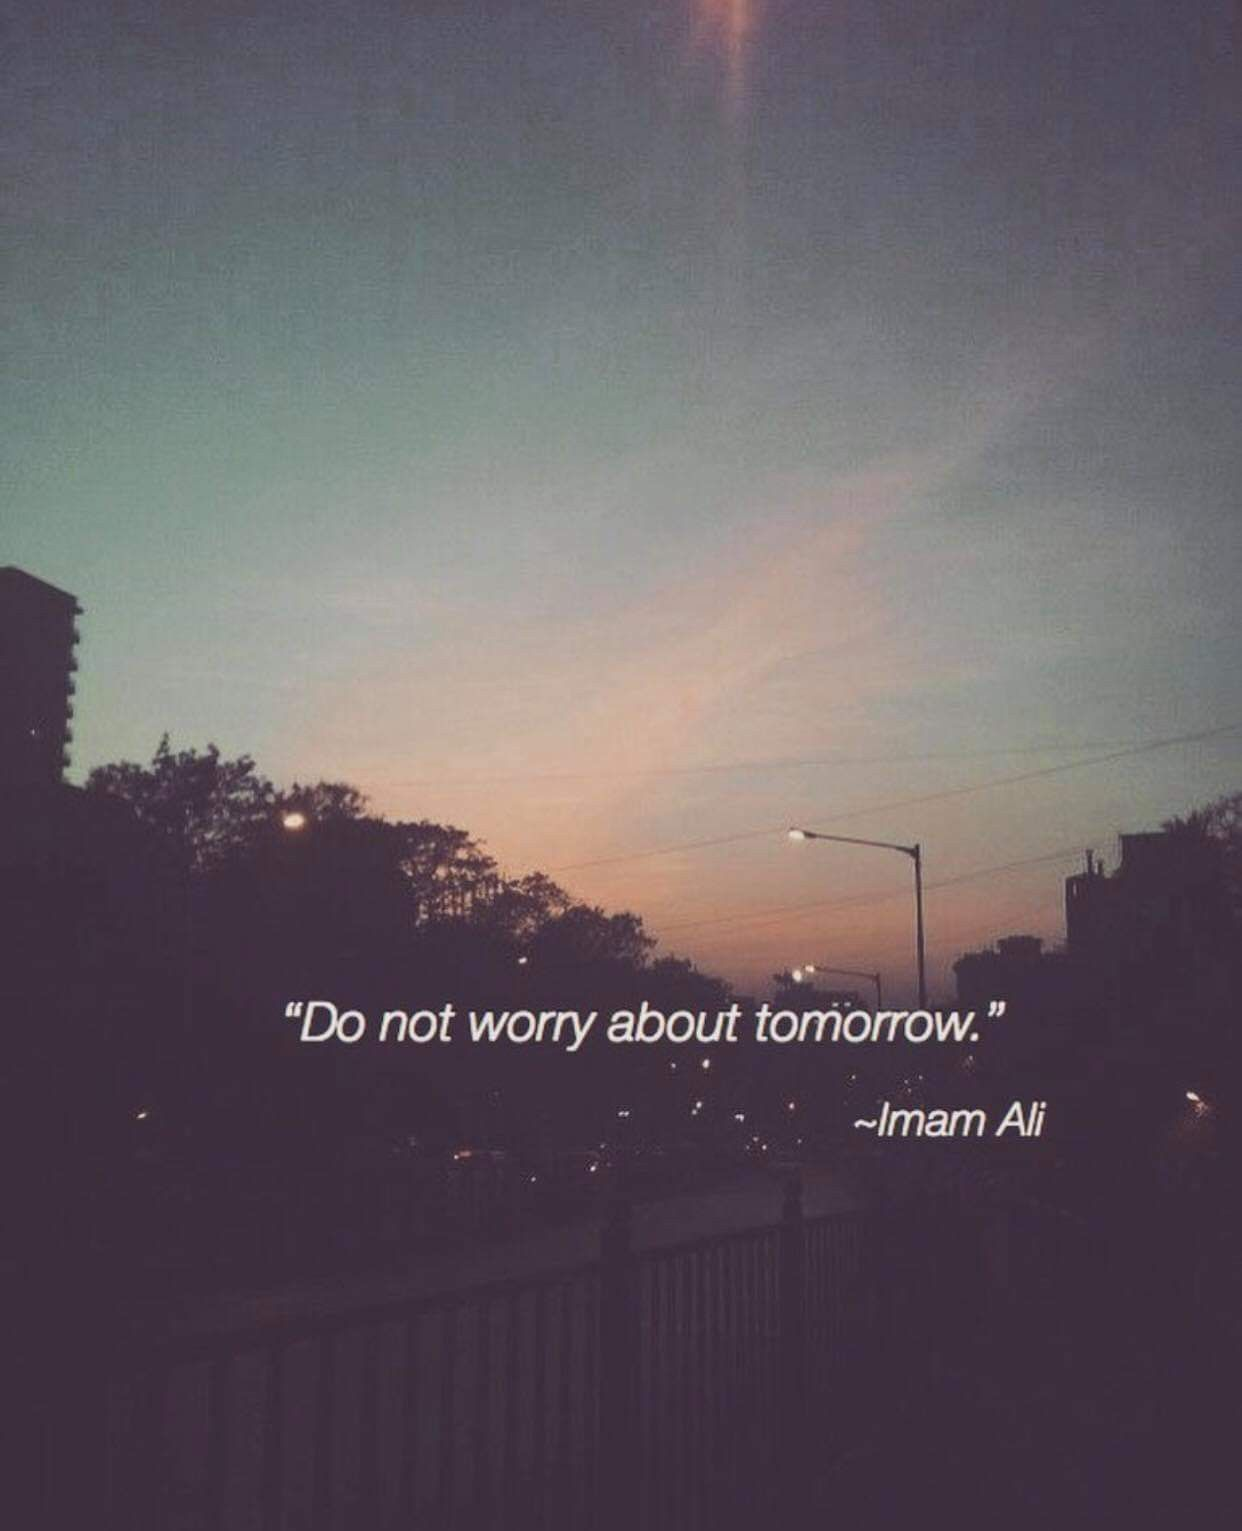 don't not worry about tomorrow jangan khawatir tentang hari